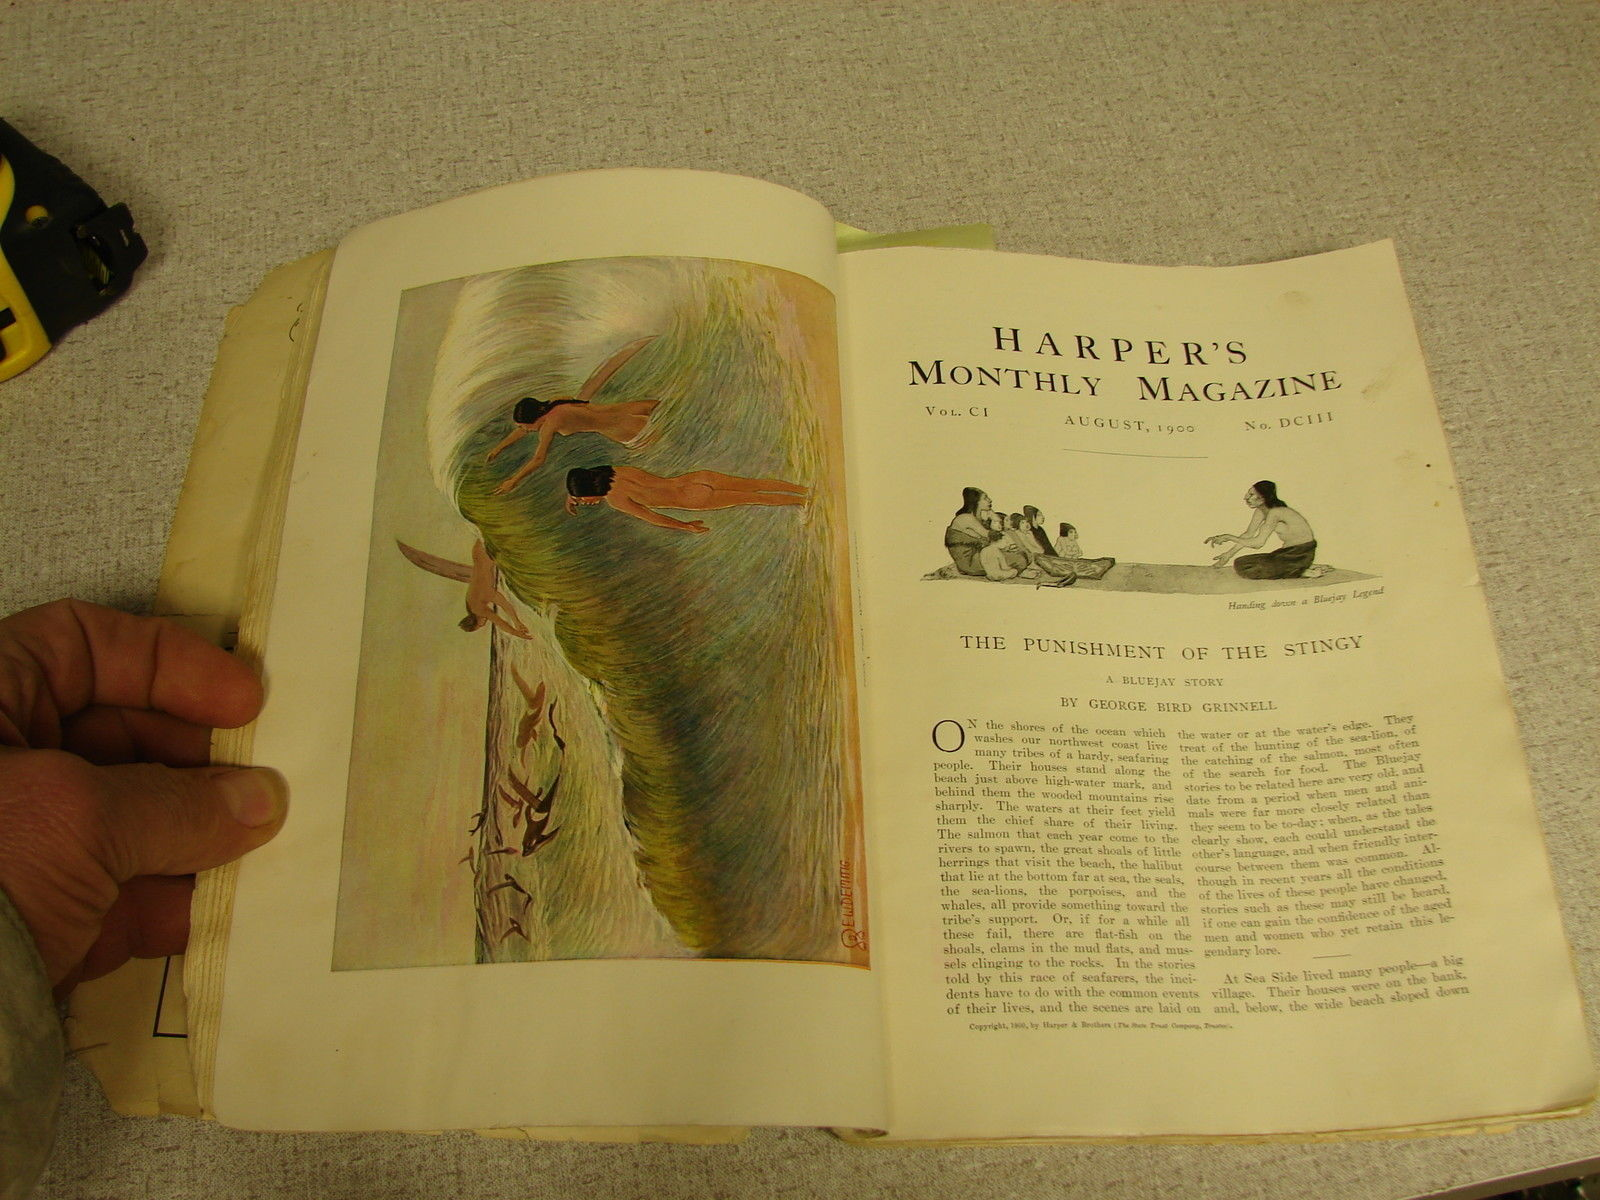 Harpers monthly magazine No. 603 August 1900 image 6